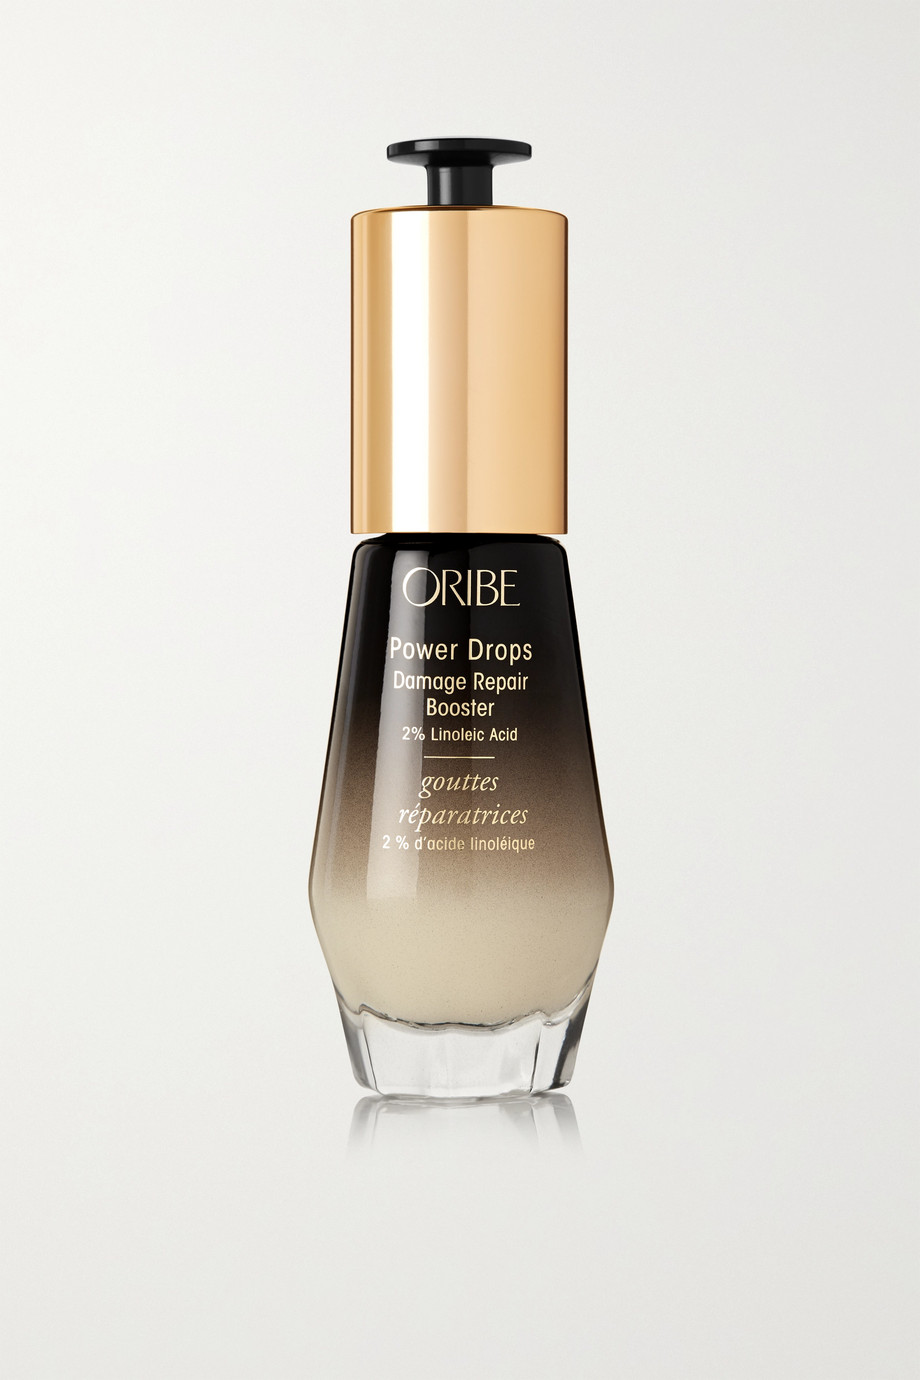 ORIBE Power Drops Damage Repair Booster, 30ml